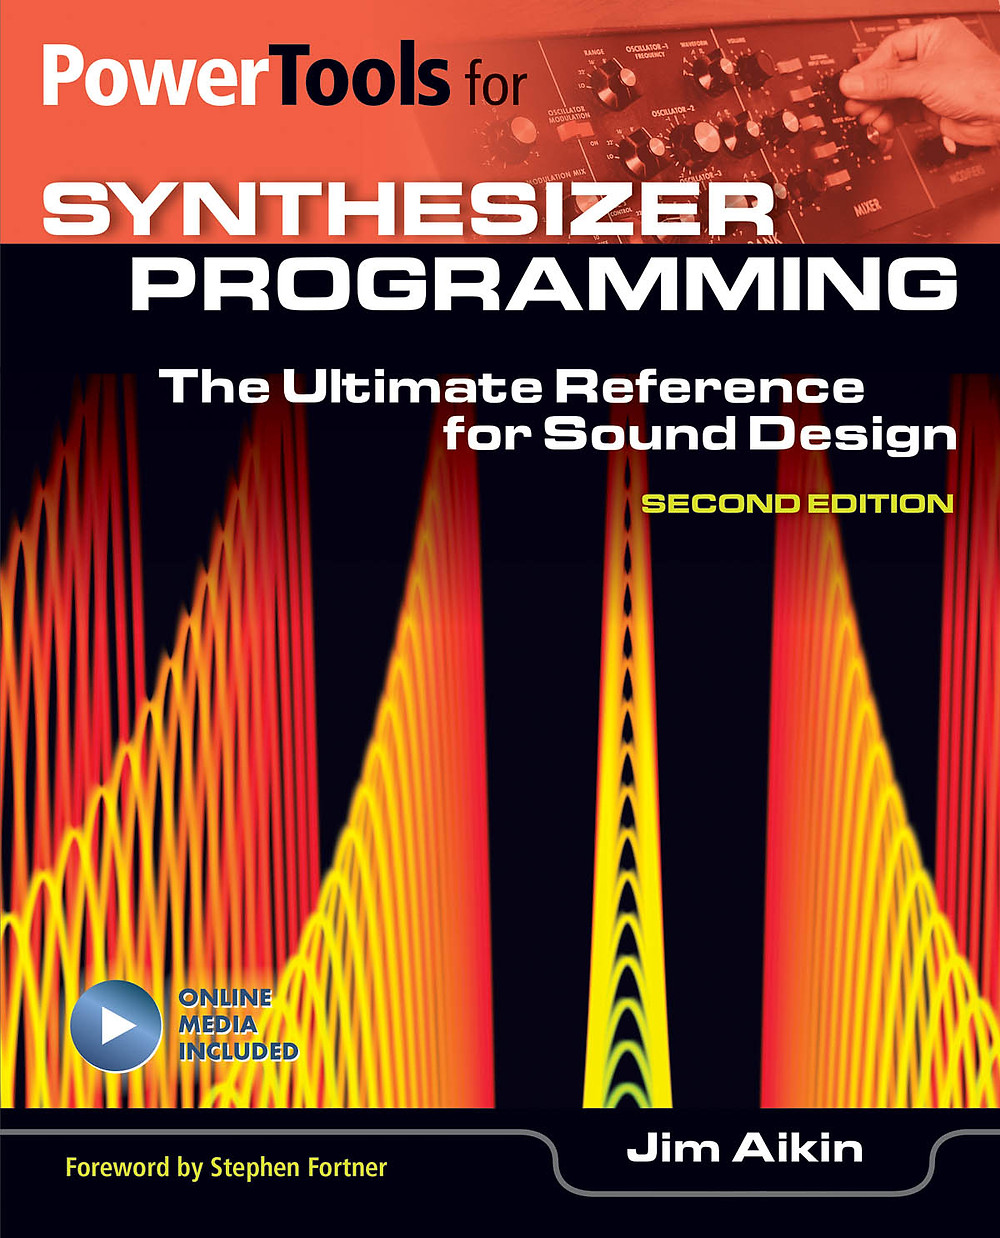 Synth_Programming_Cover.jpg